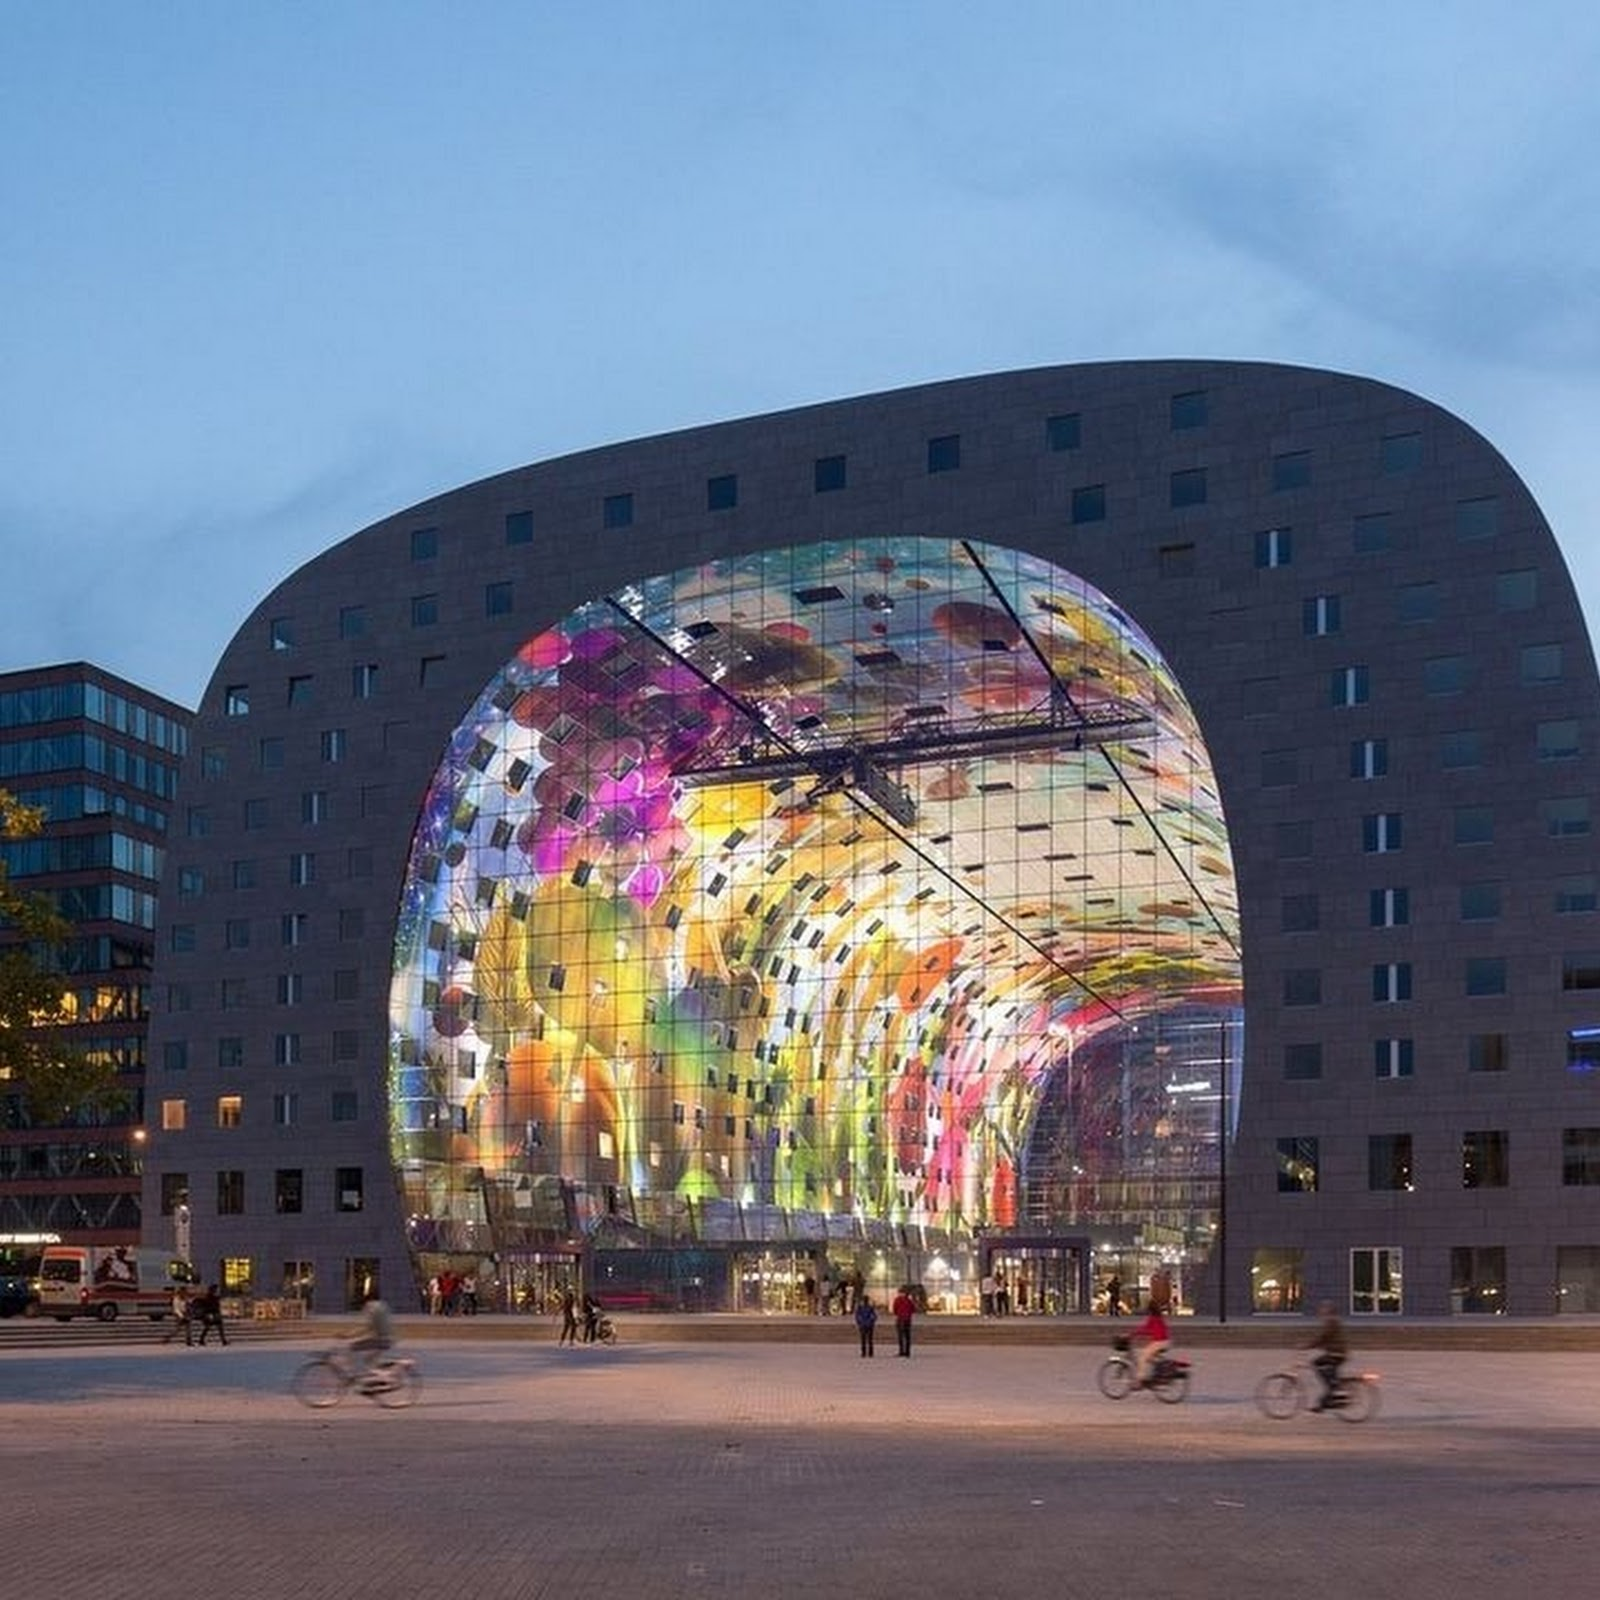 Markthal: Rotterdam's Beautiful Food Market in Netherland